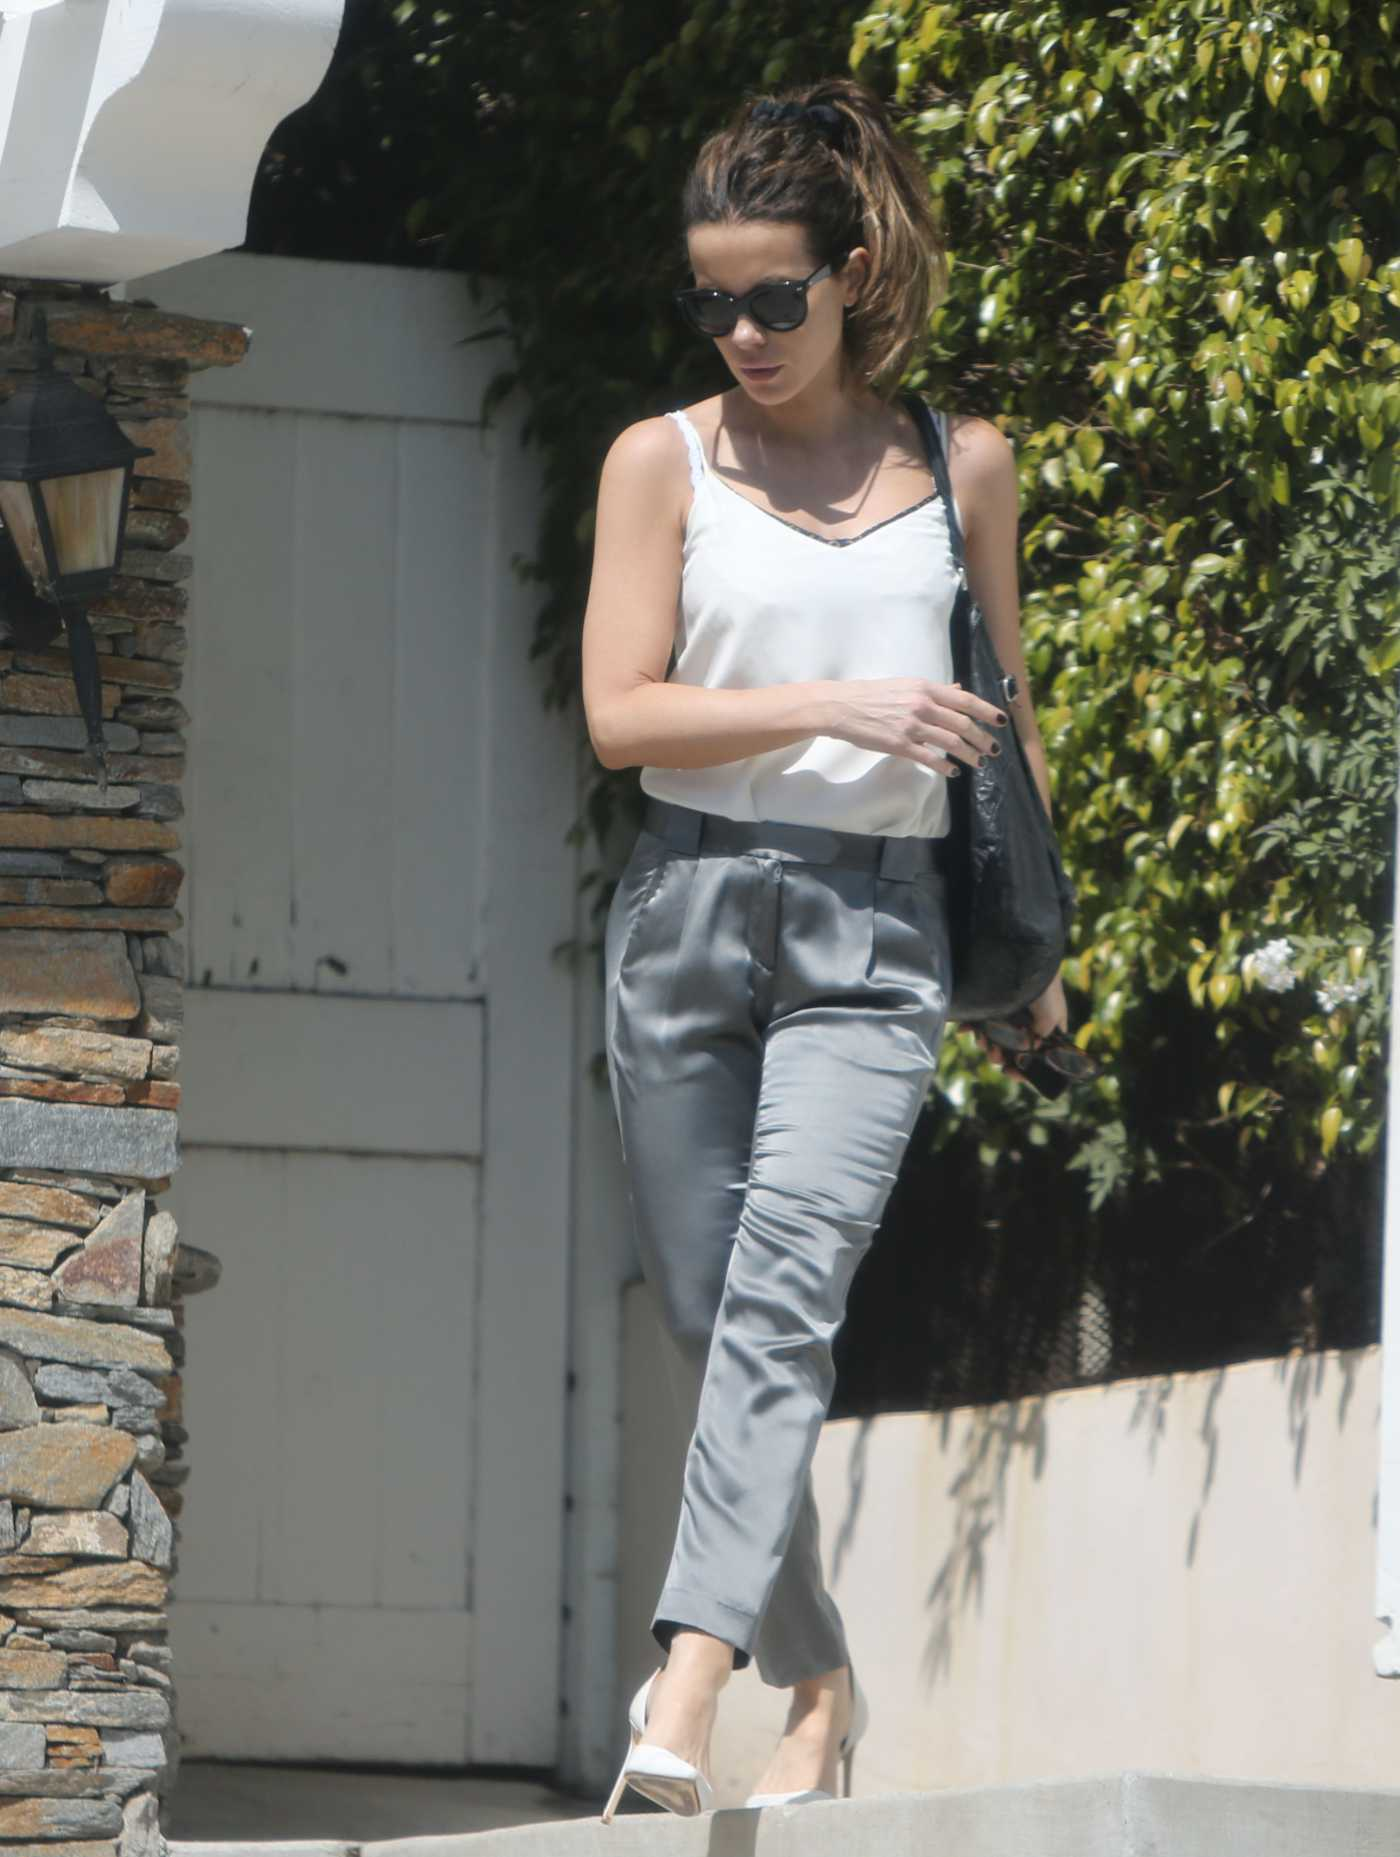 Kate Beckinsale in a White Top Was Seen Out in Los Angeles 06/28/2019